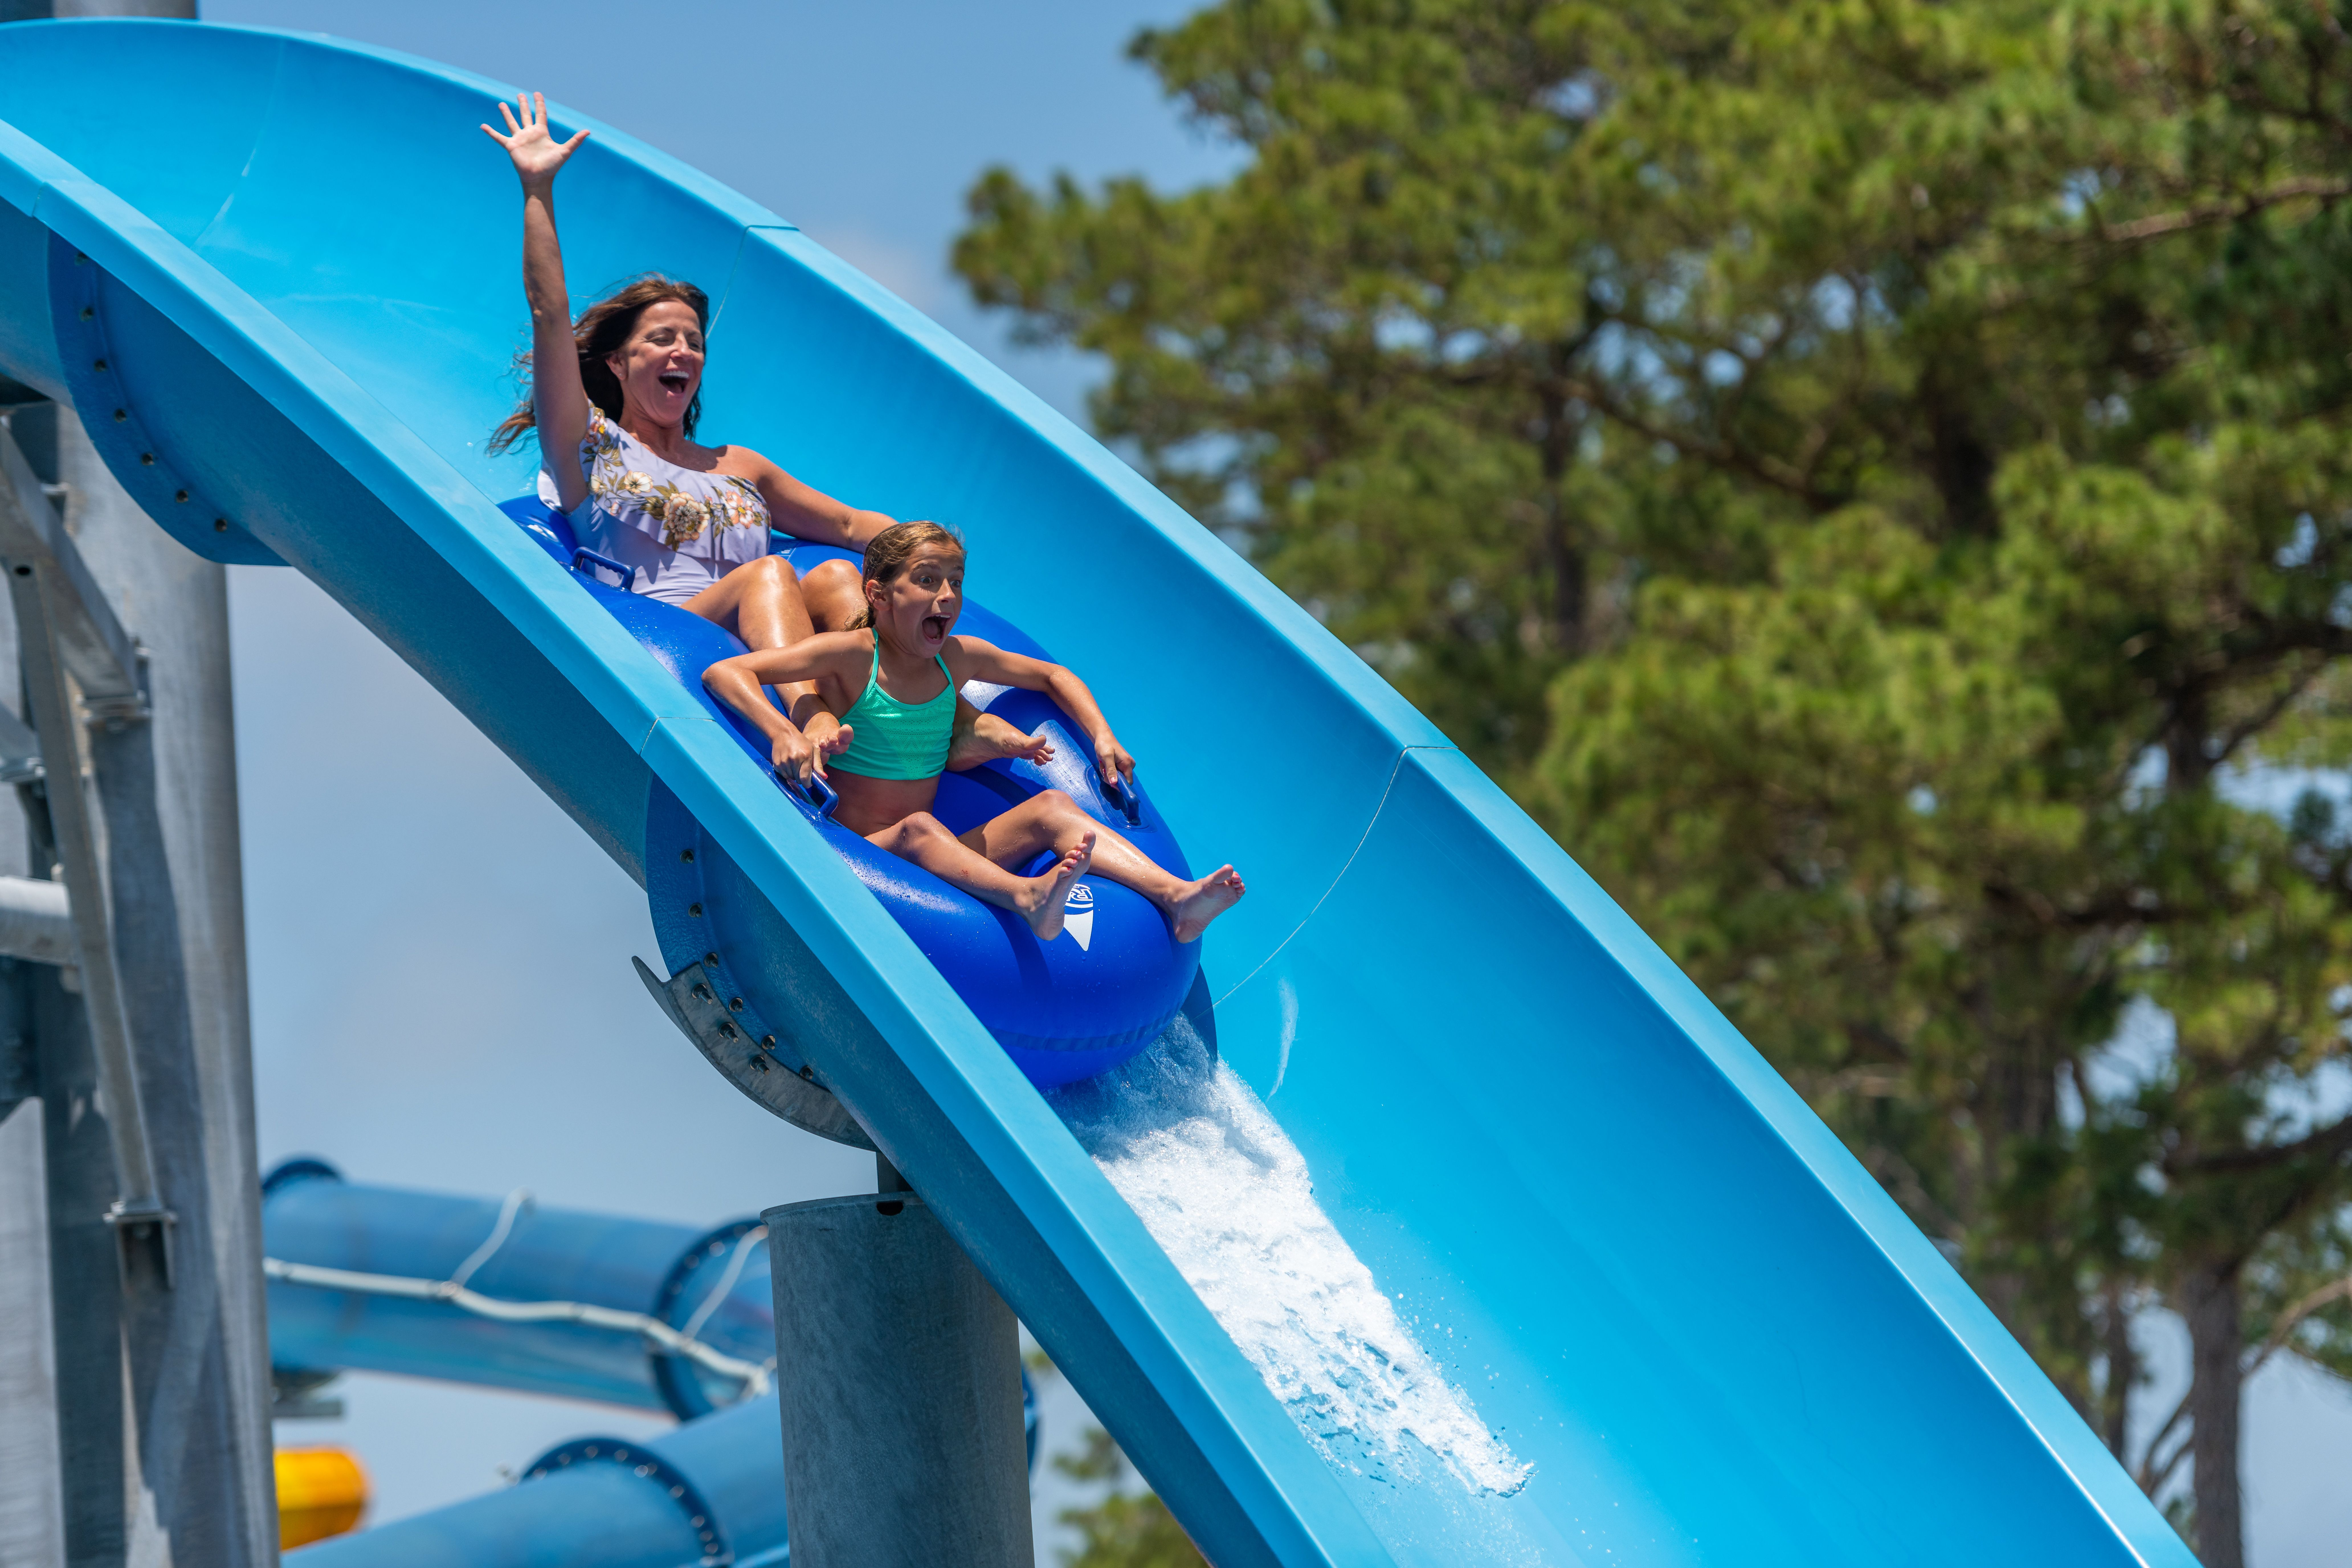 mother daughter on blue slide